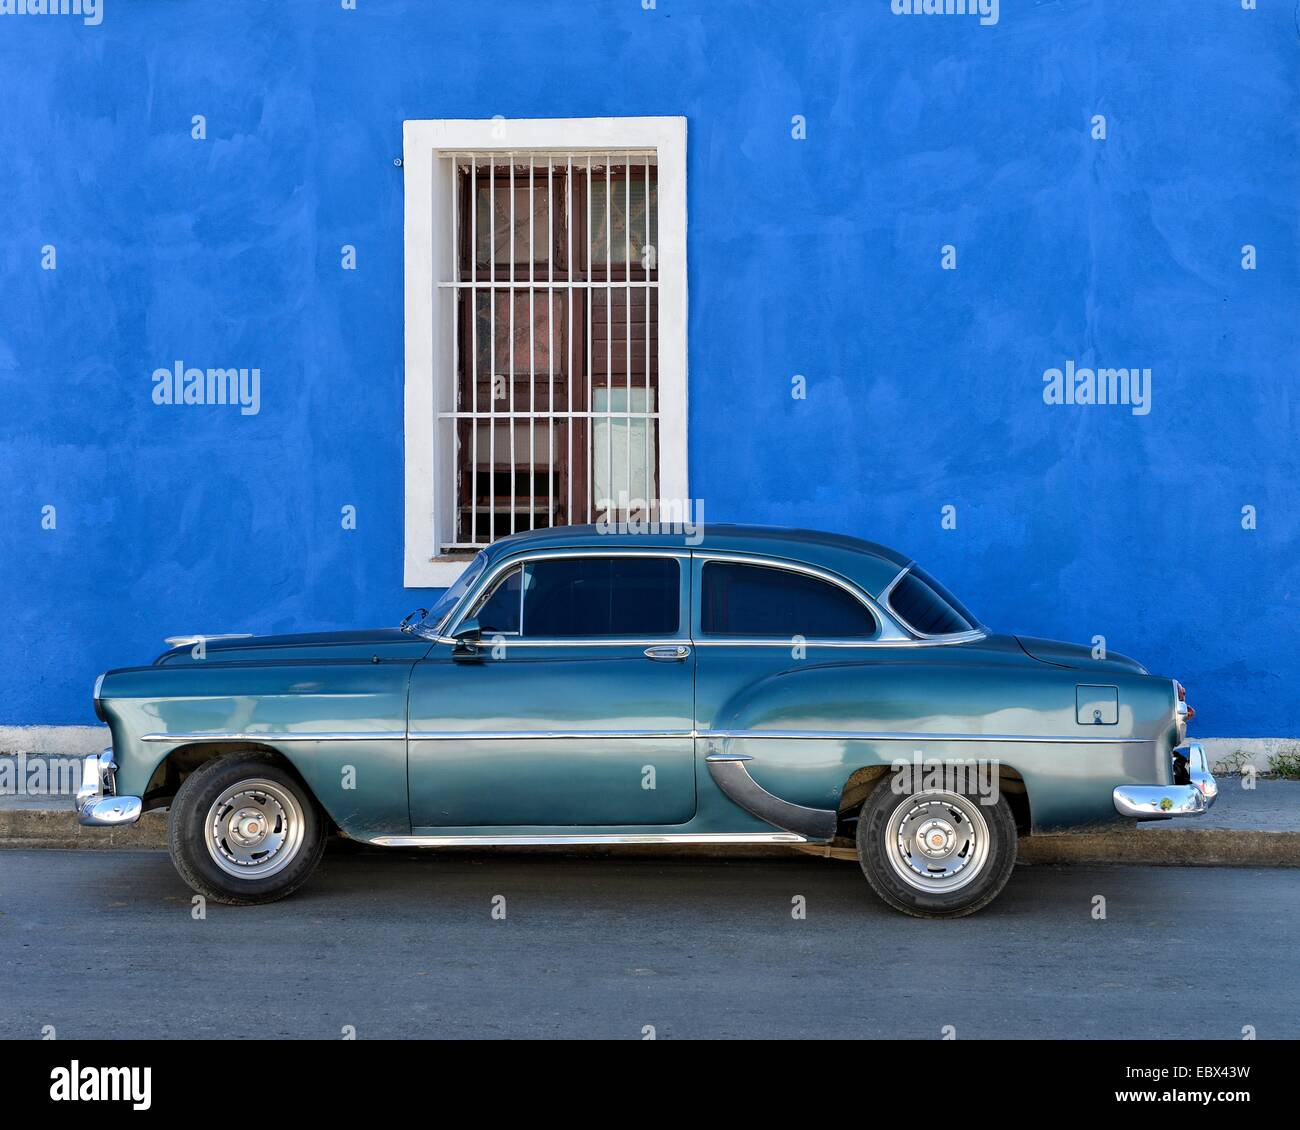 A blue shiny Cuban classic car parked in a street in central Cienfuegos, Cuba, Caribbean. - Stock Image